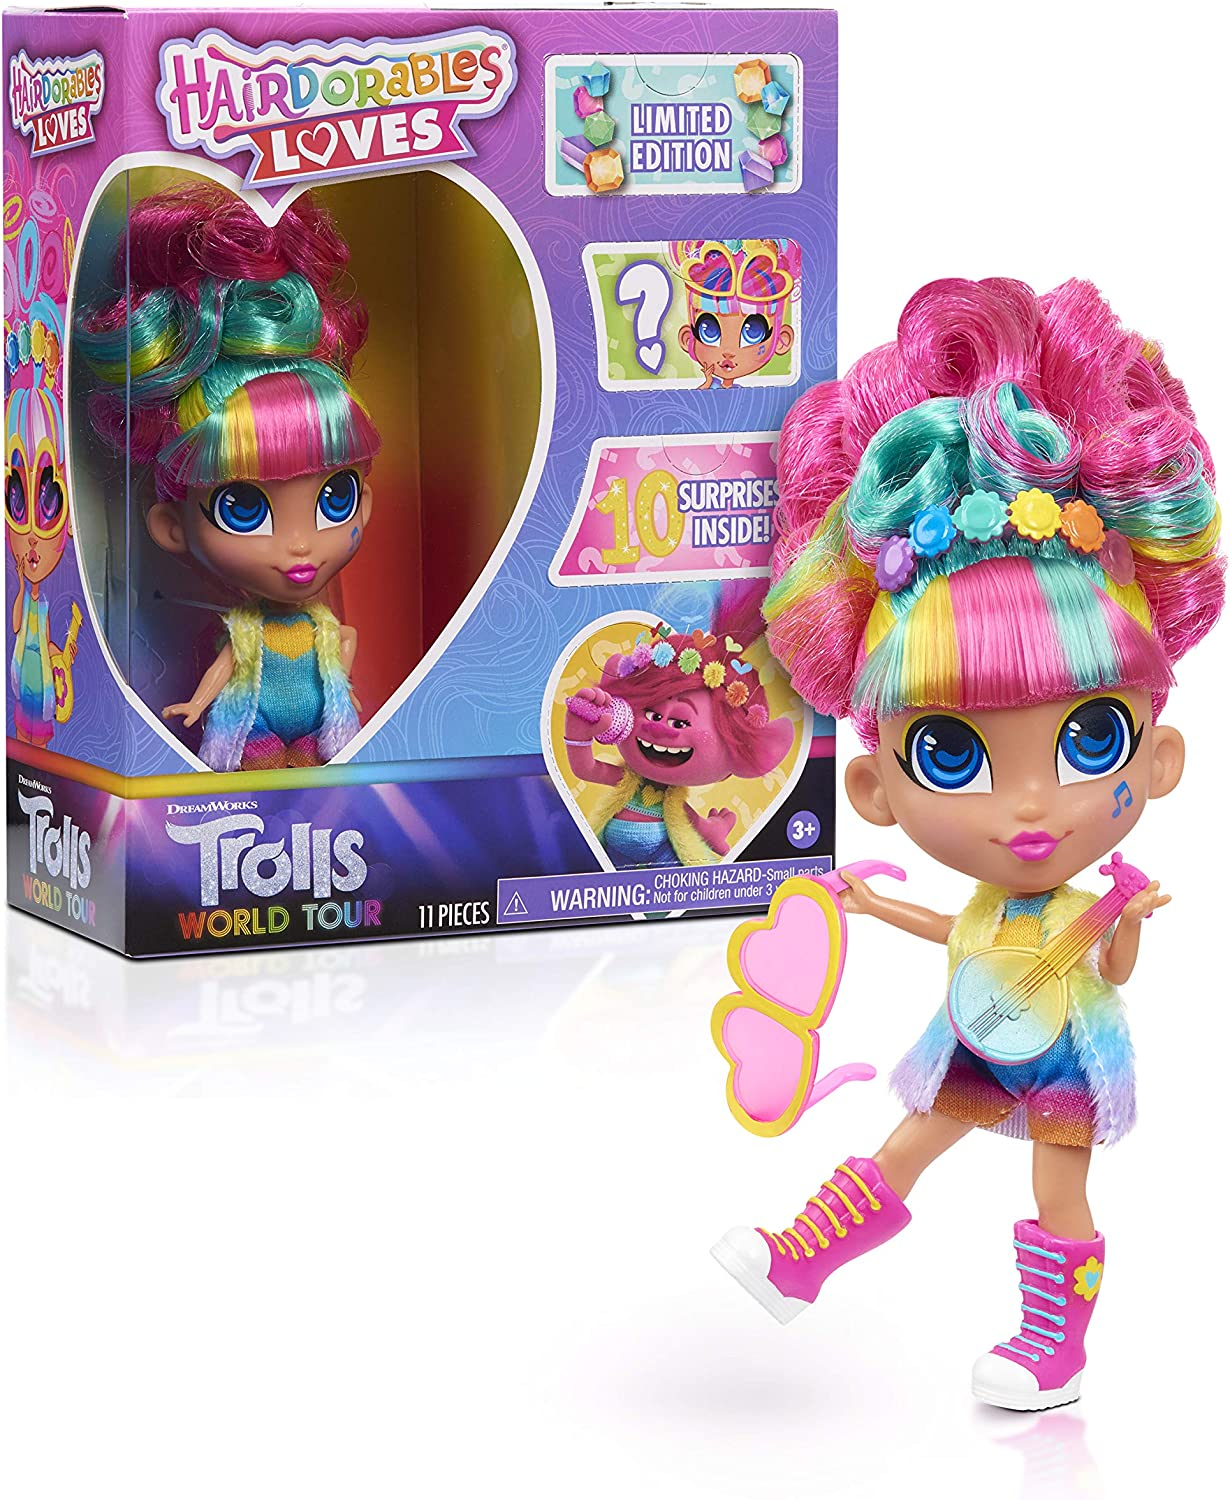 JP Hairdorables HAA08000 Hairdorables Loves Trolls 22% OFF £13.99 @ Amazon